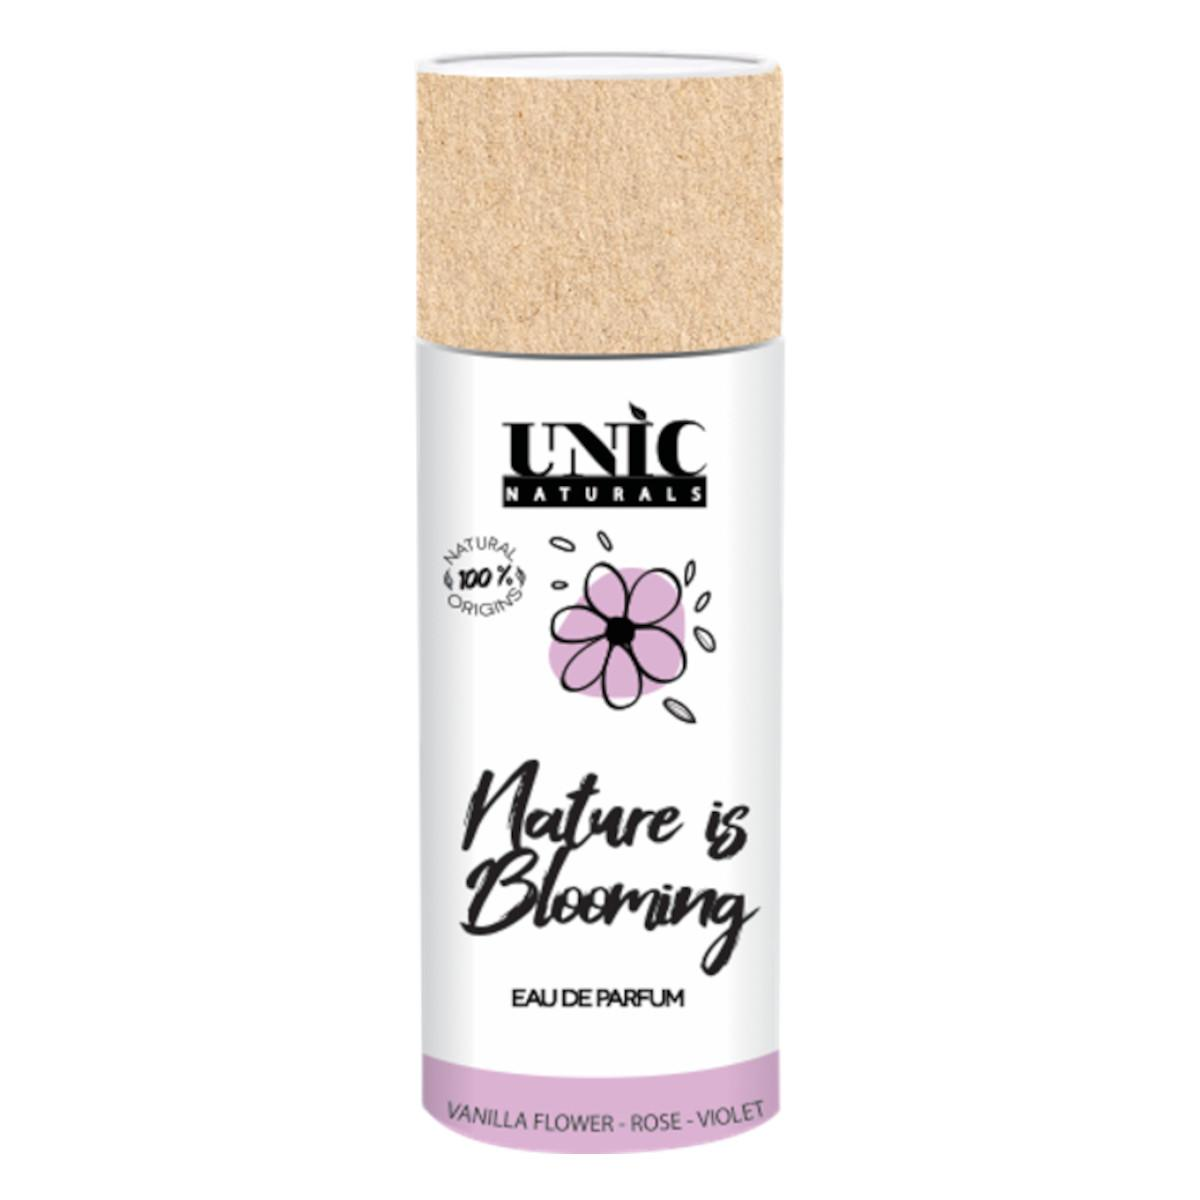 UNIC NATURALS Nature Is Blooming Edp 30 ml